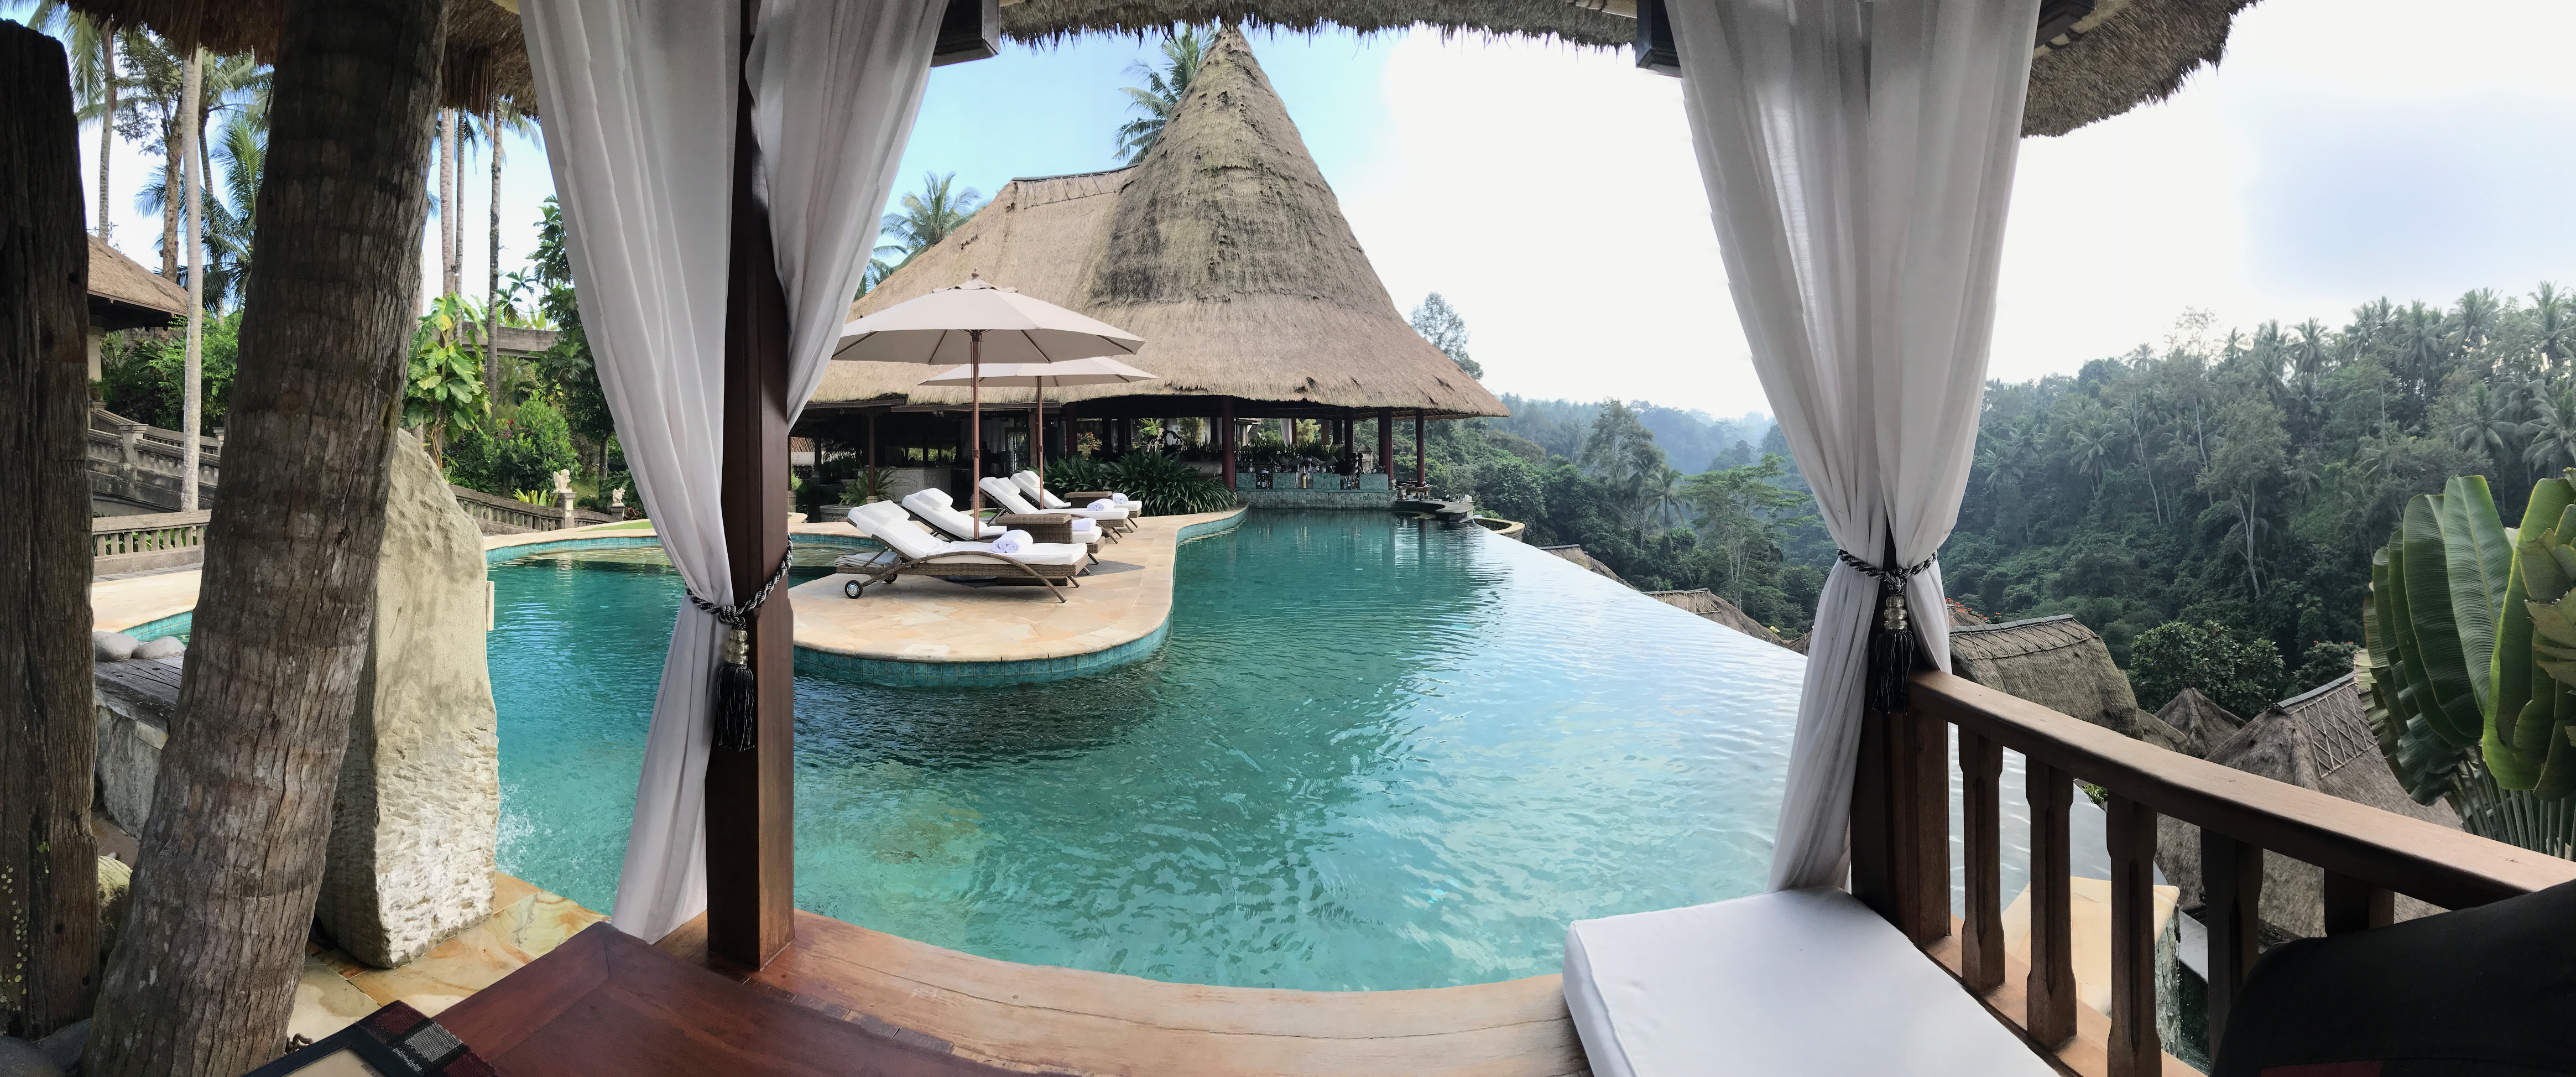 Our stay at viceroy bali communikait for Luxury places to stay in bali